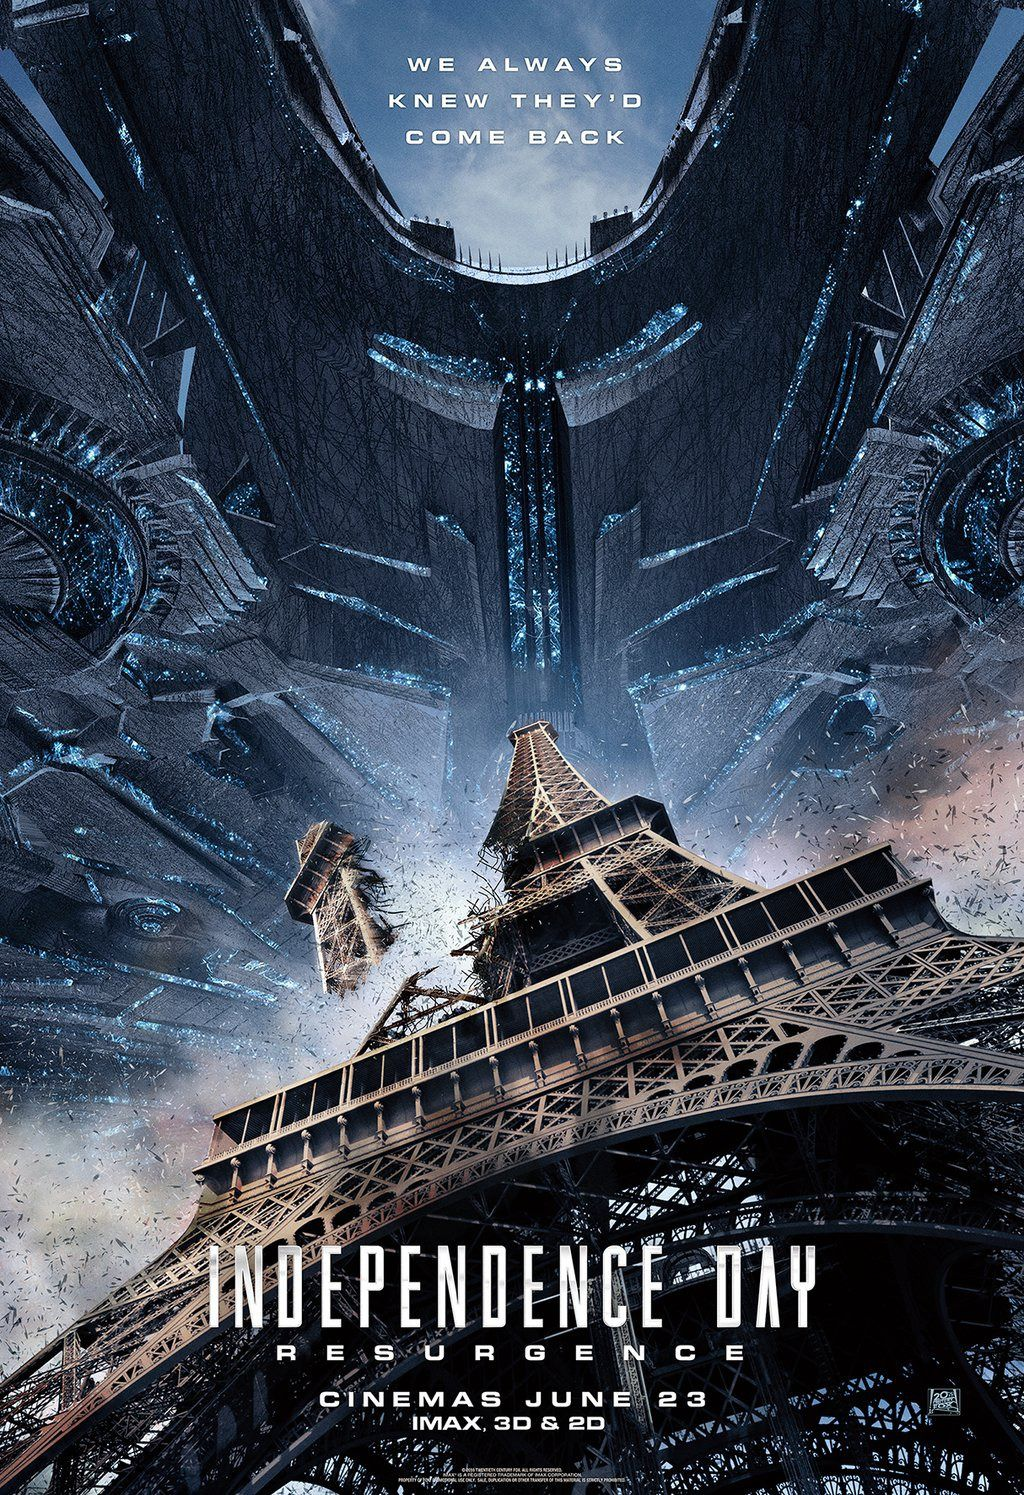 Independence Day Resurgence Movie Posters Movies Online Independence Day